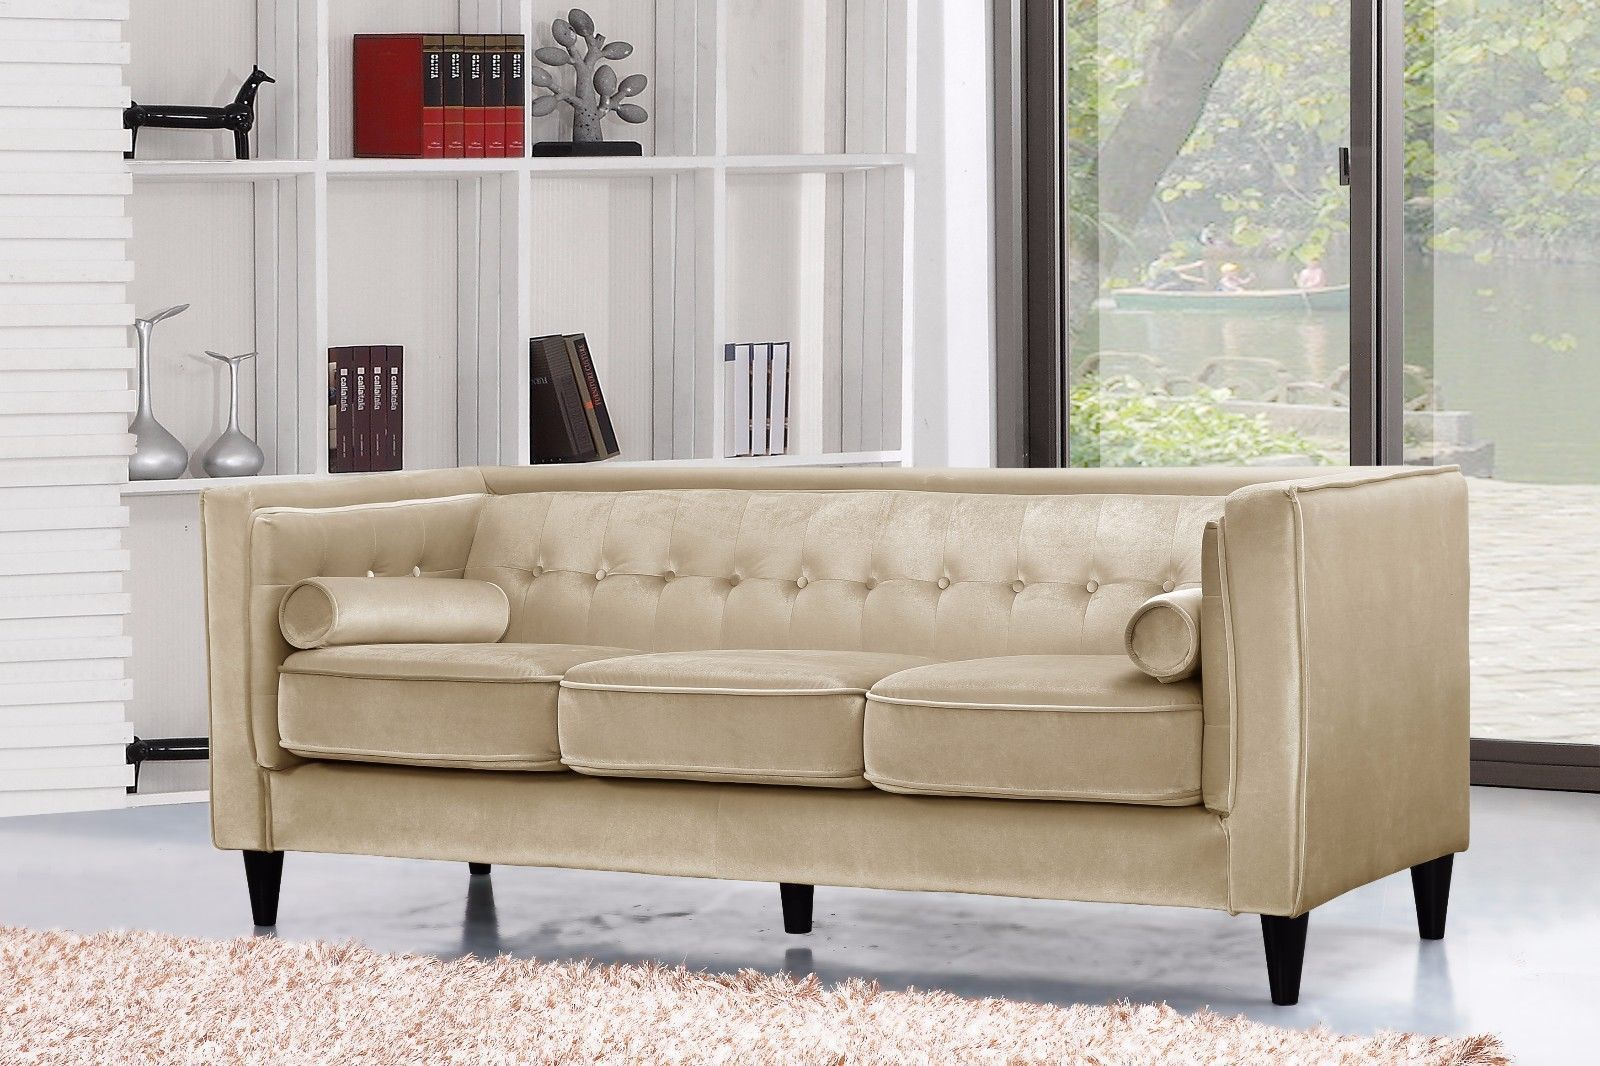 Meridian 642 Taylor Living Room Sofa in Beige Velvet Contemporary Style